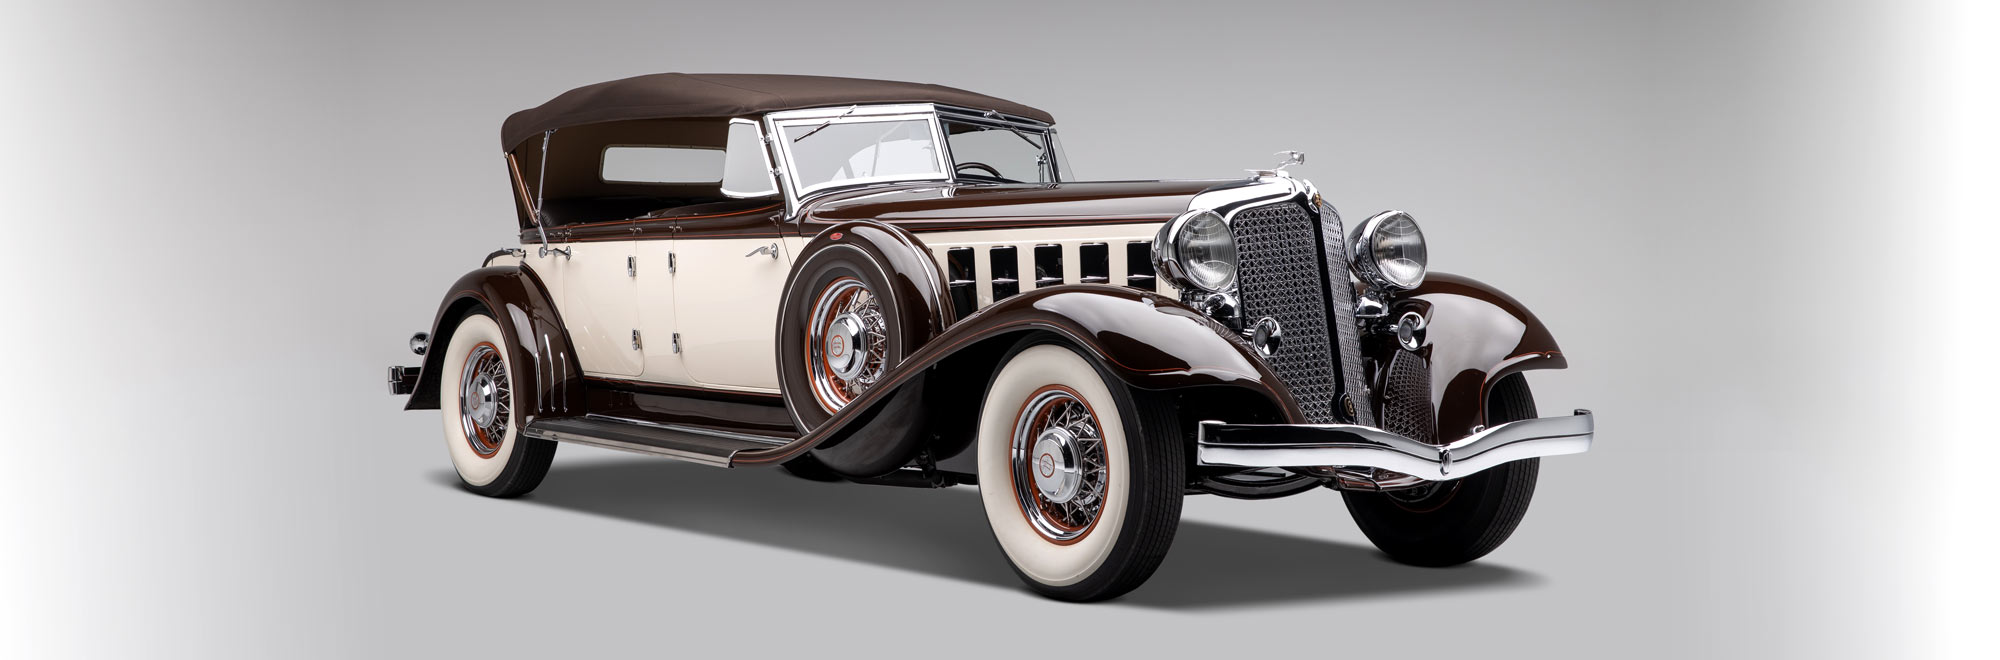 1933 Chrysler Imperial LeBaron | The JBS Collection